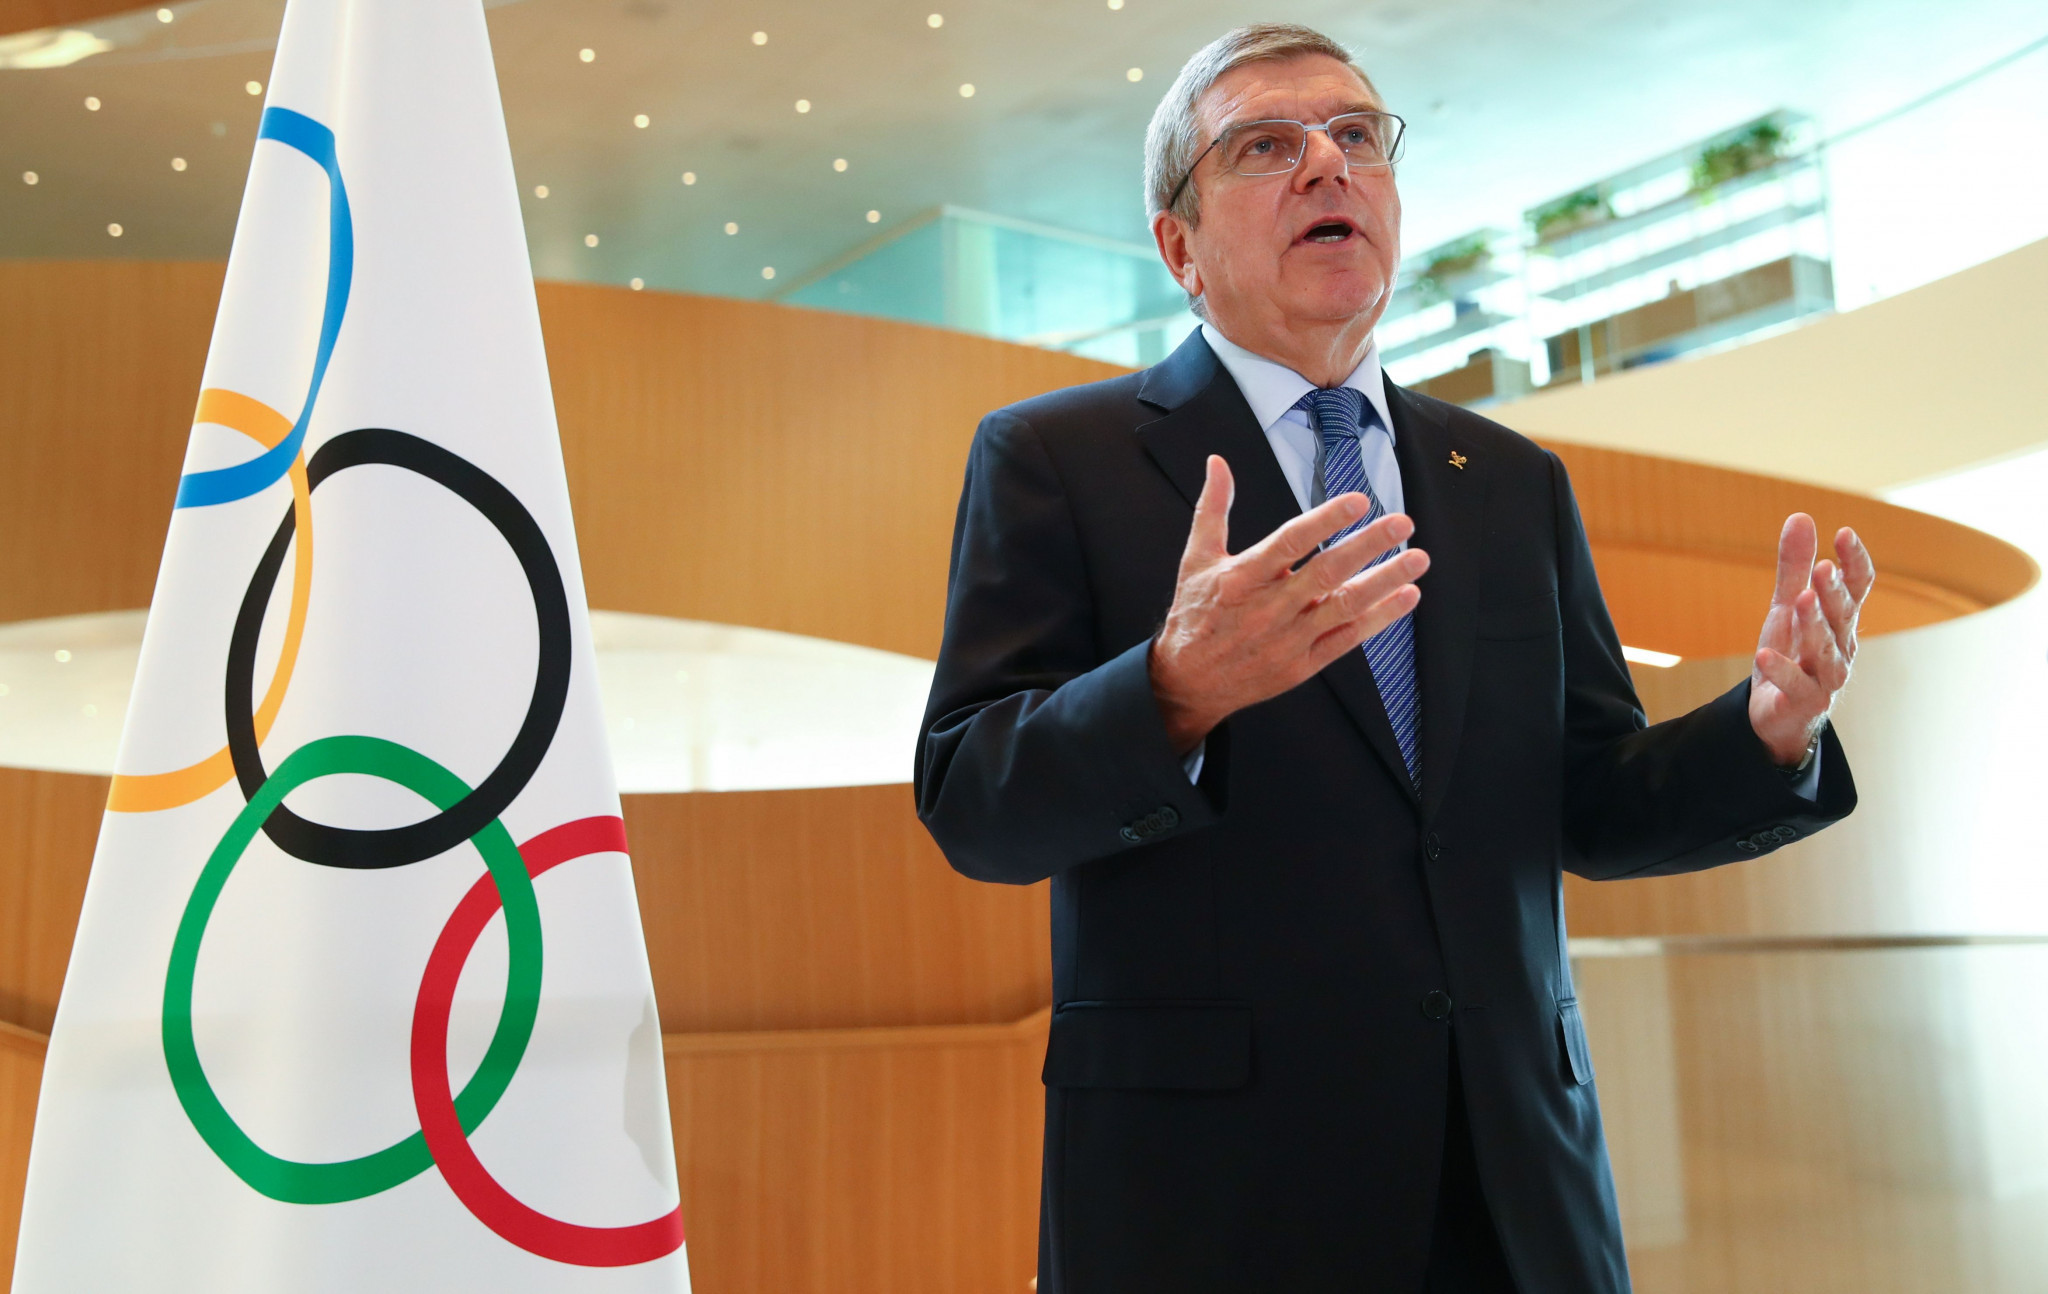 IOC President Thomas Bach has said Rule 50 could be reviewed as part of a consultation by the IOC Athletes Commission, a stance welcomed by Athletes Germany ©Getty Images